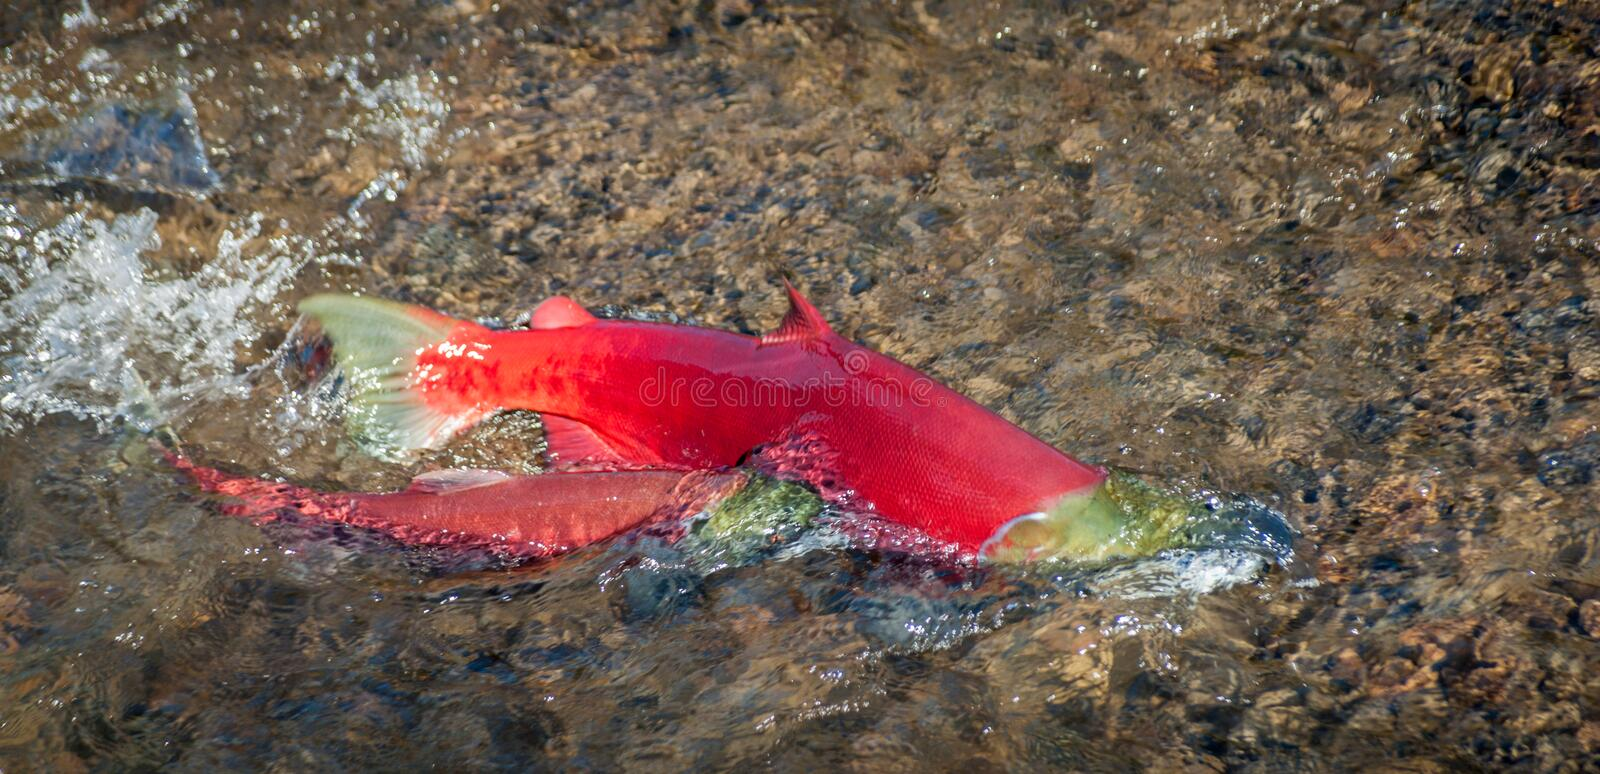 Saumon rouge Salmon Pair - jeu de accouplement images stock